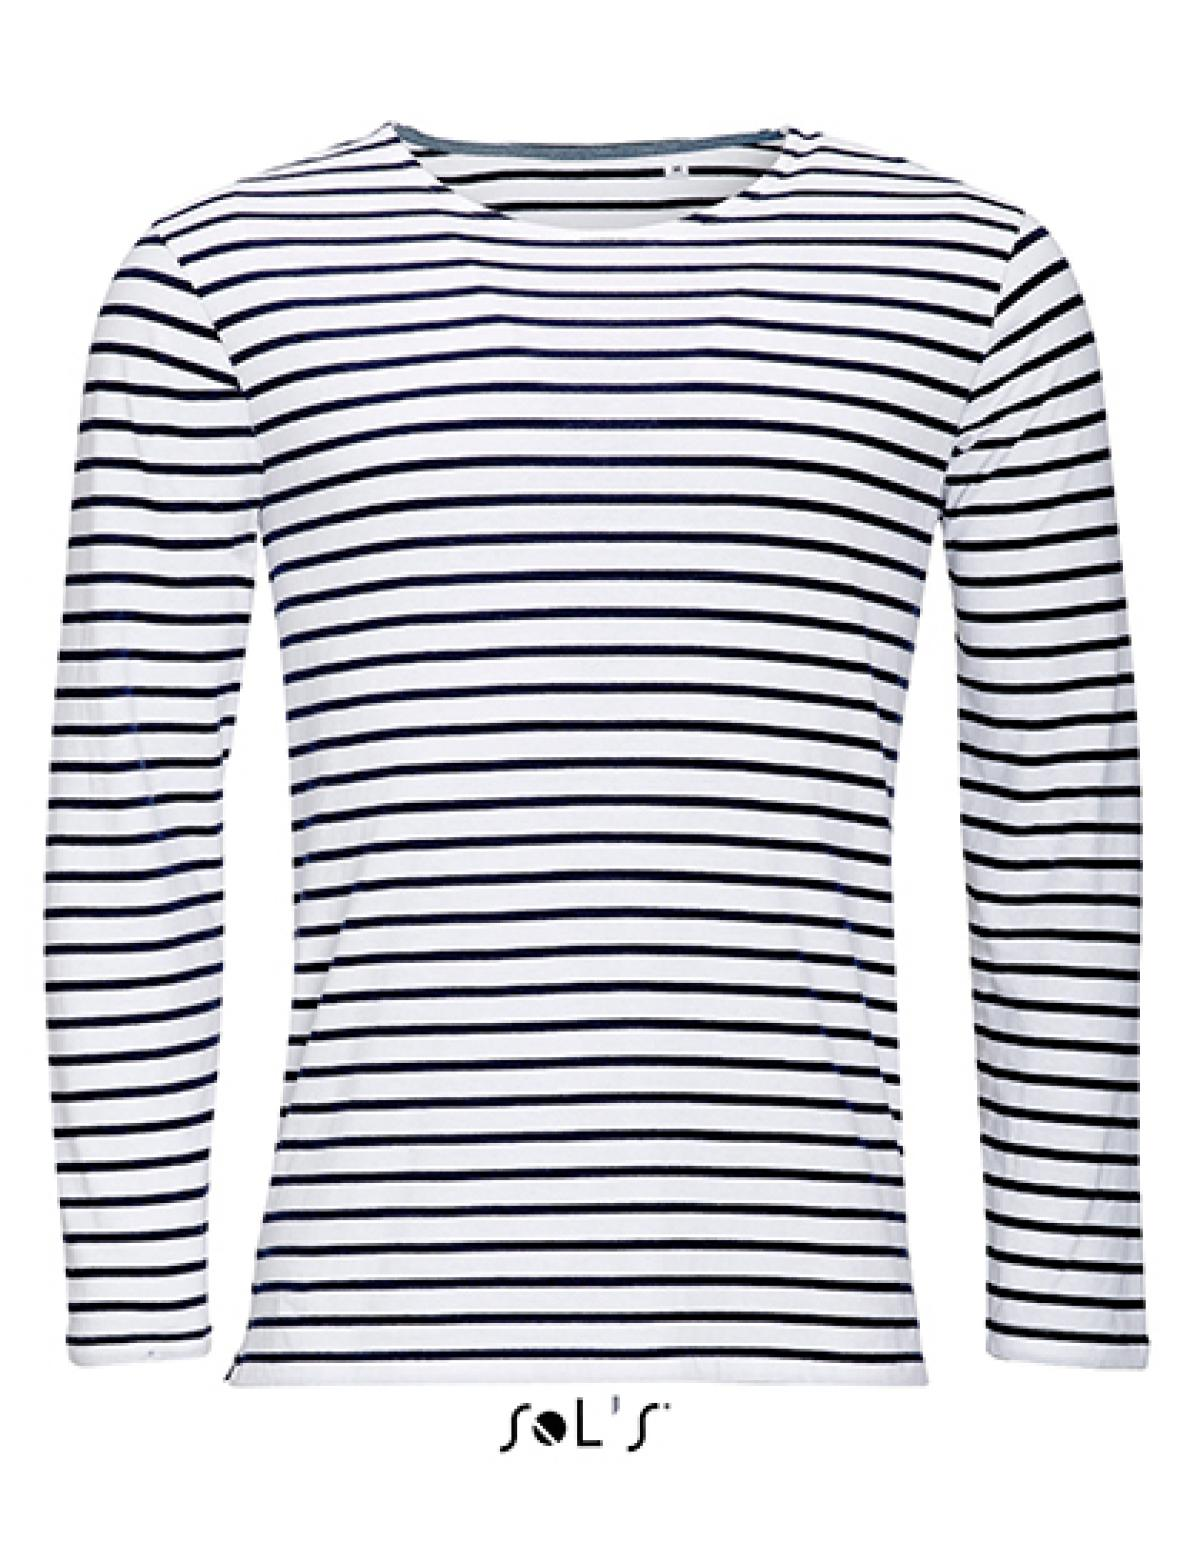 herren longsleeve striped t shirt marine gestreift. Black Bedroom Furniture Sets. Home Design Ideas